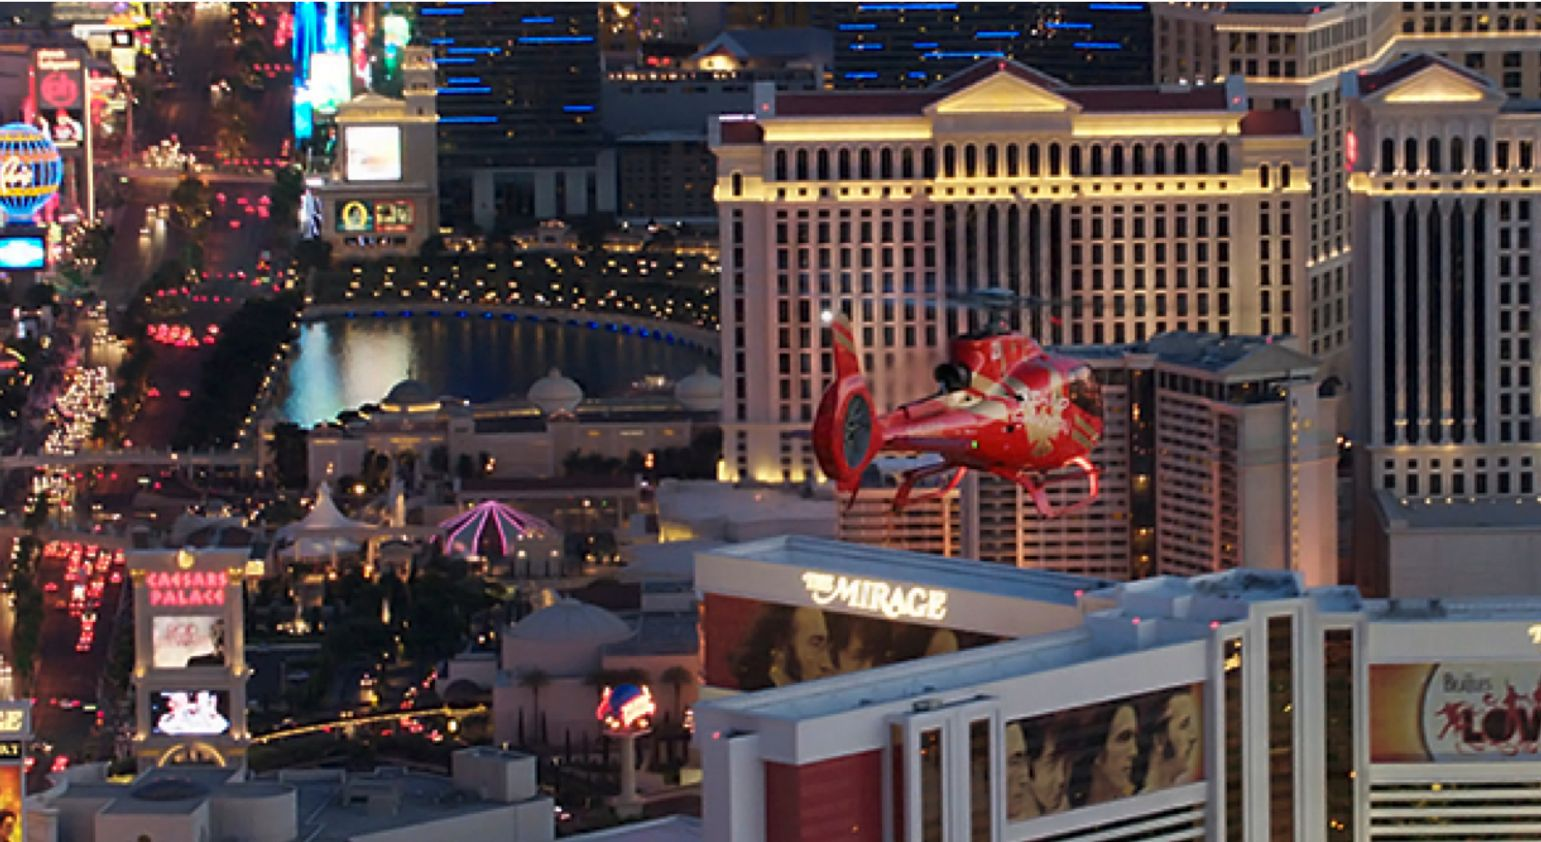 Helicopter flying over Las Vegas Strip at night.